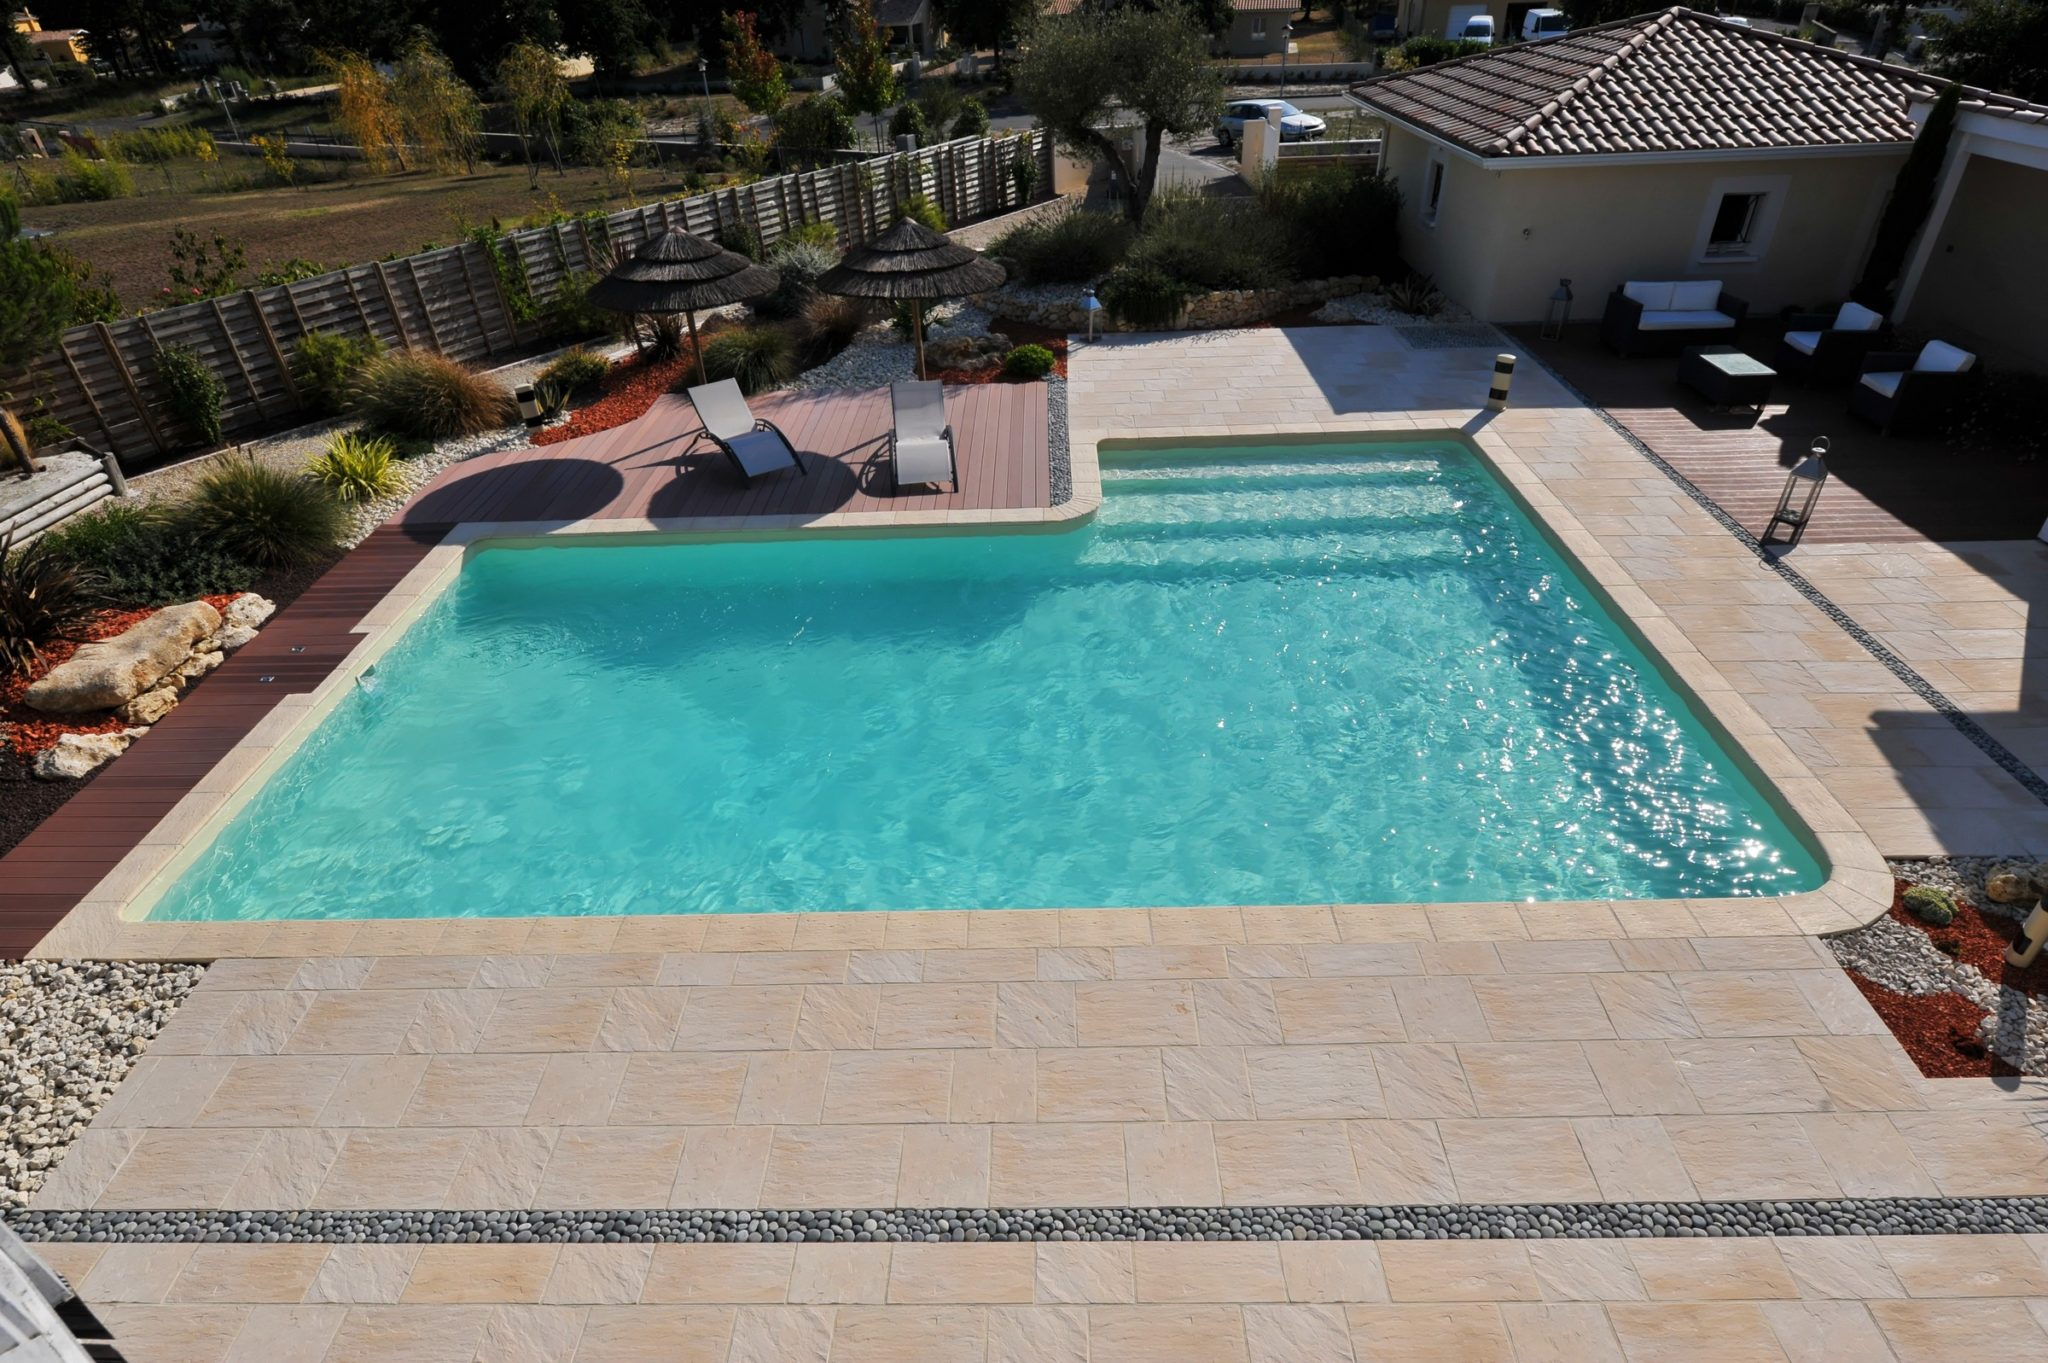 Piscine kit delaunay reference piscine constructeur de for Piscine constructeur